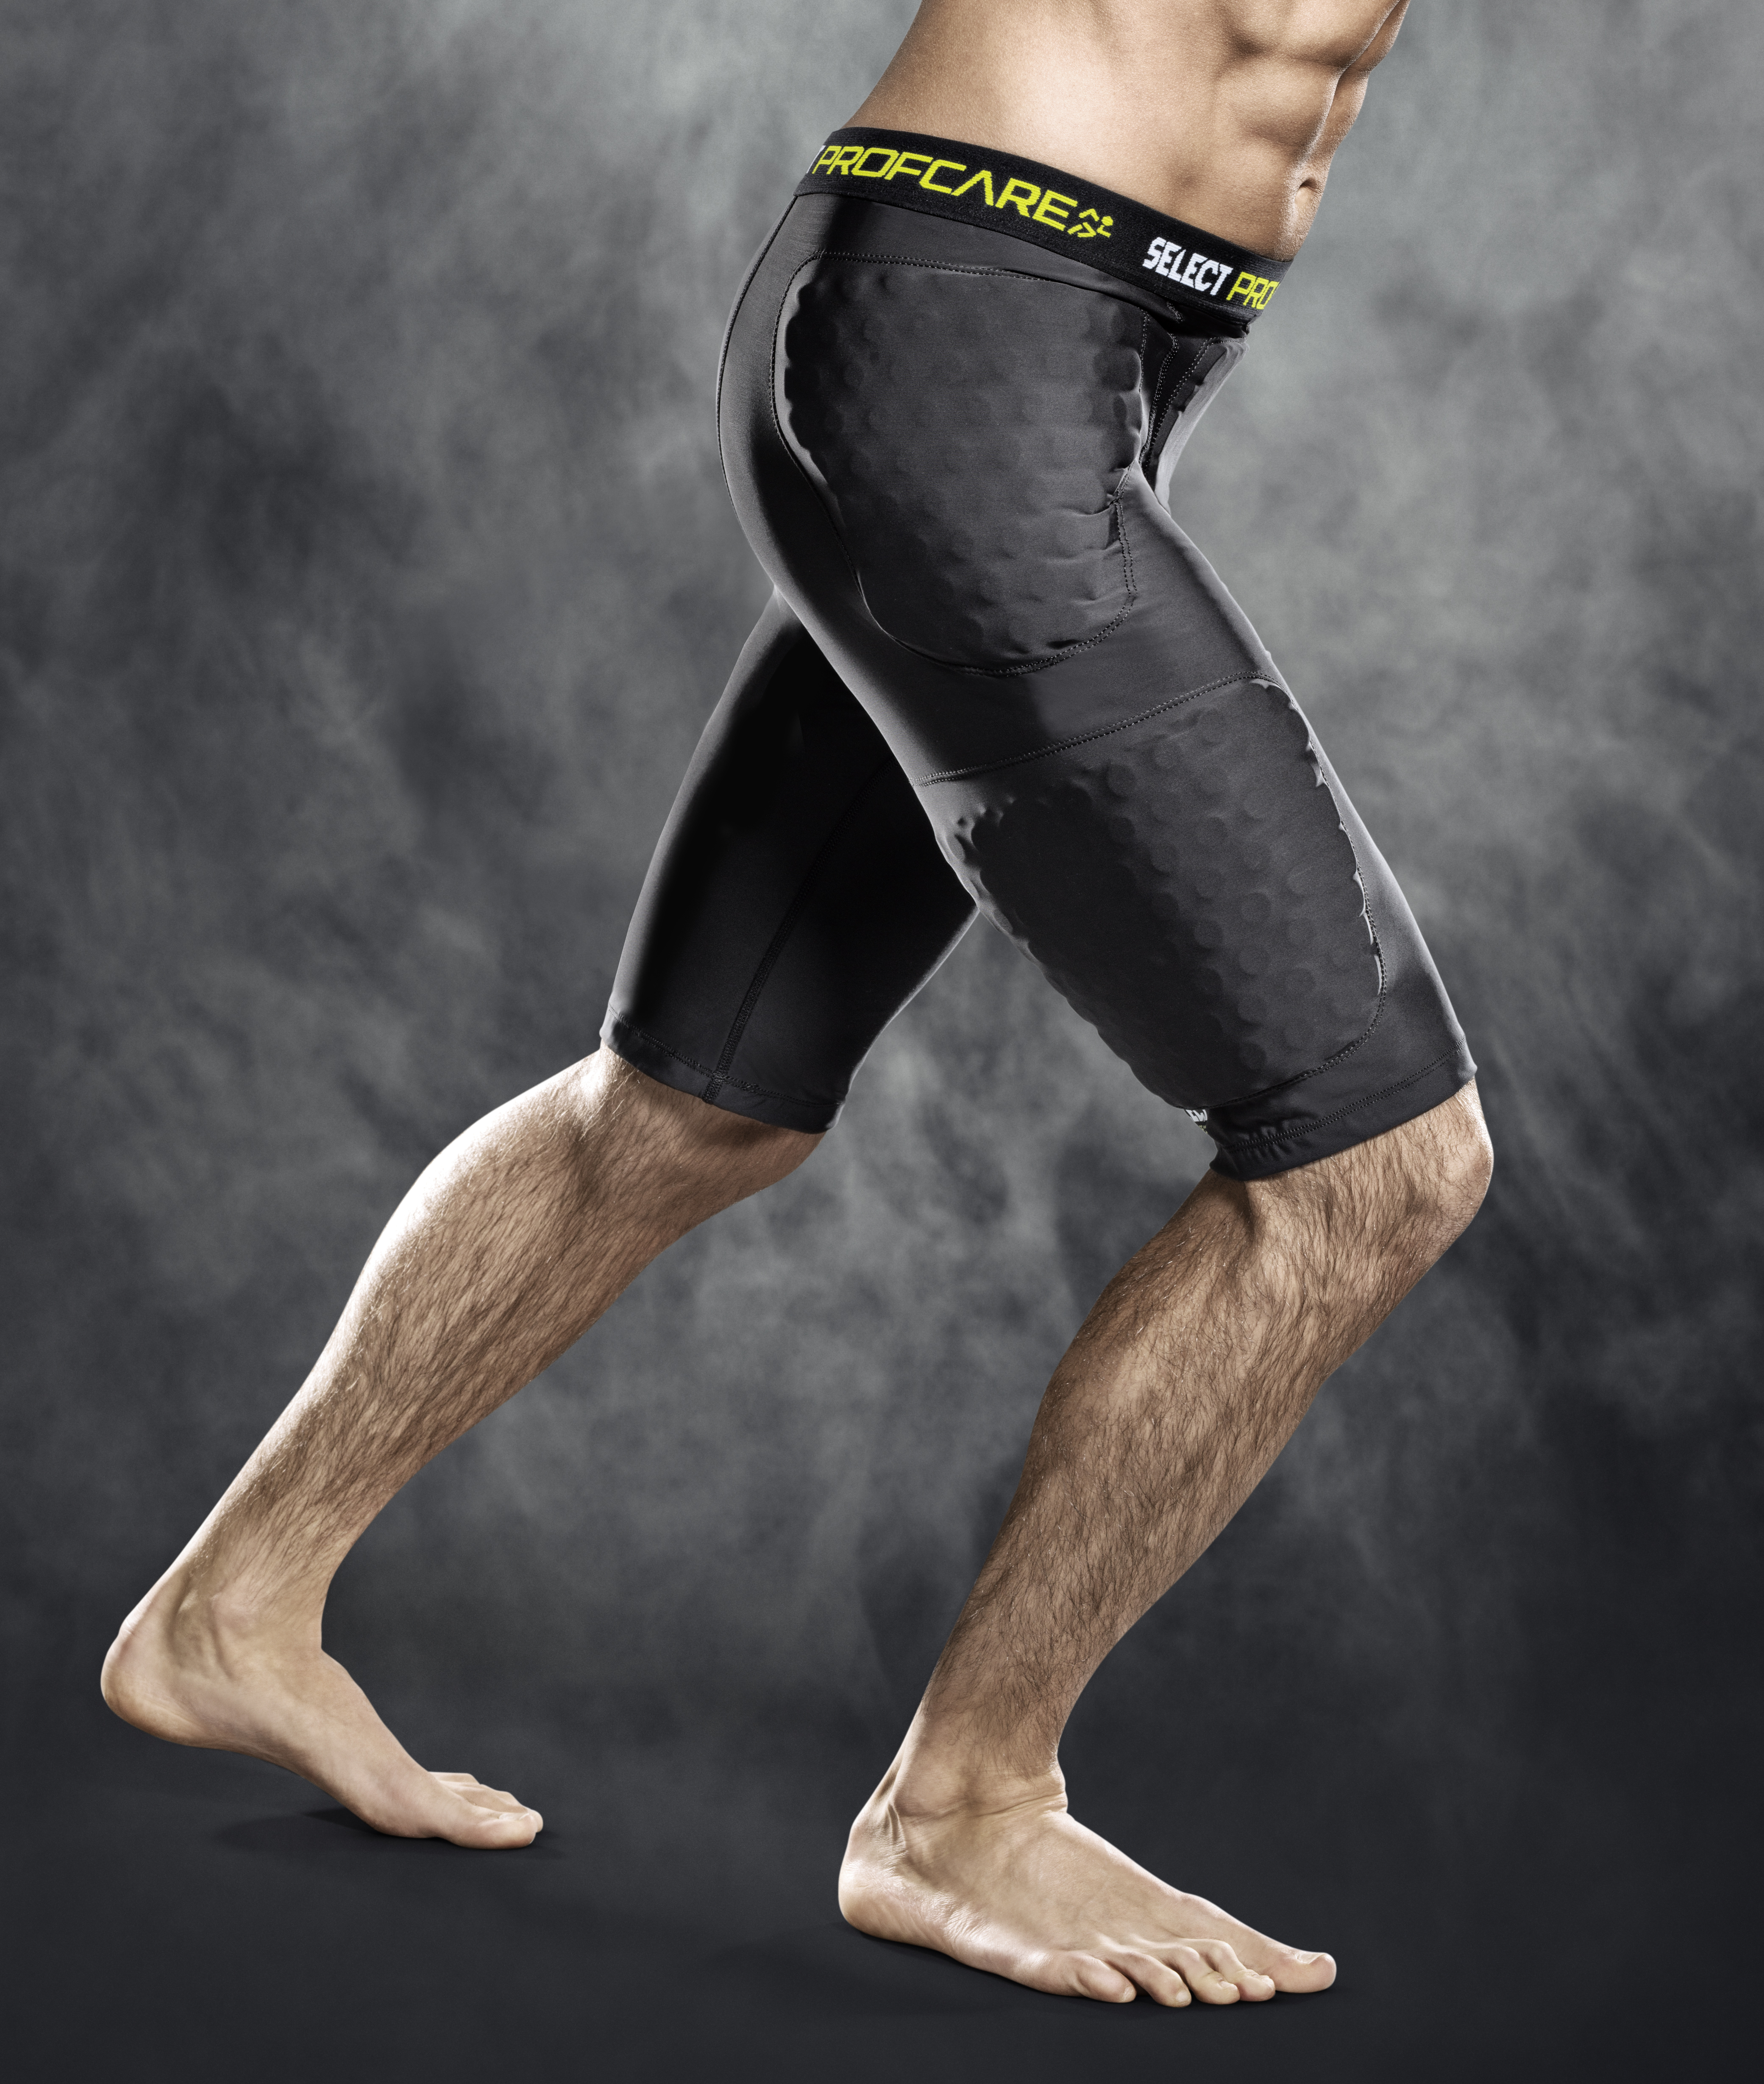 Select Profcare Compression Shorts with Pads - Black - XXL